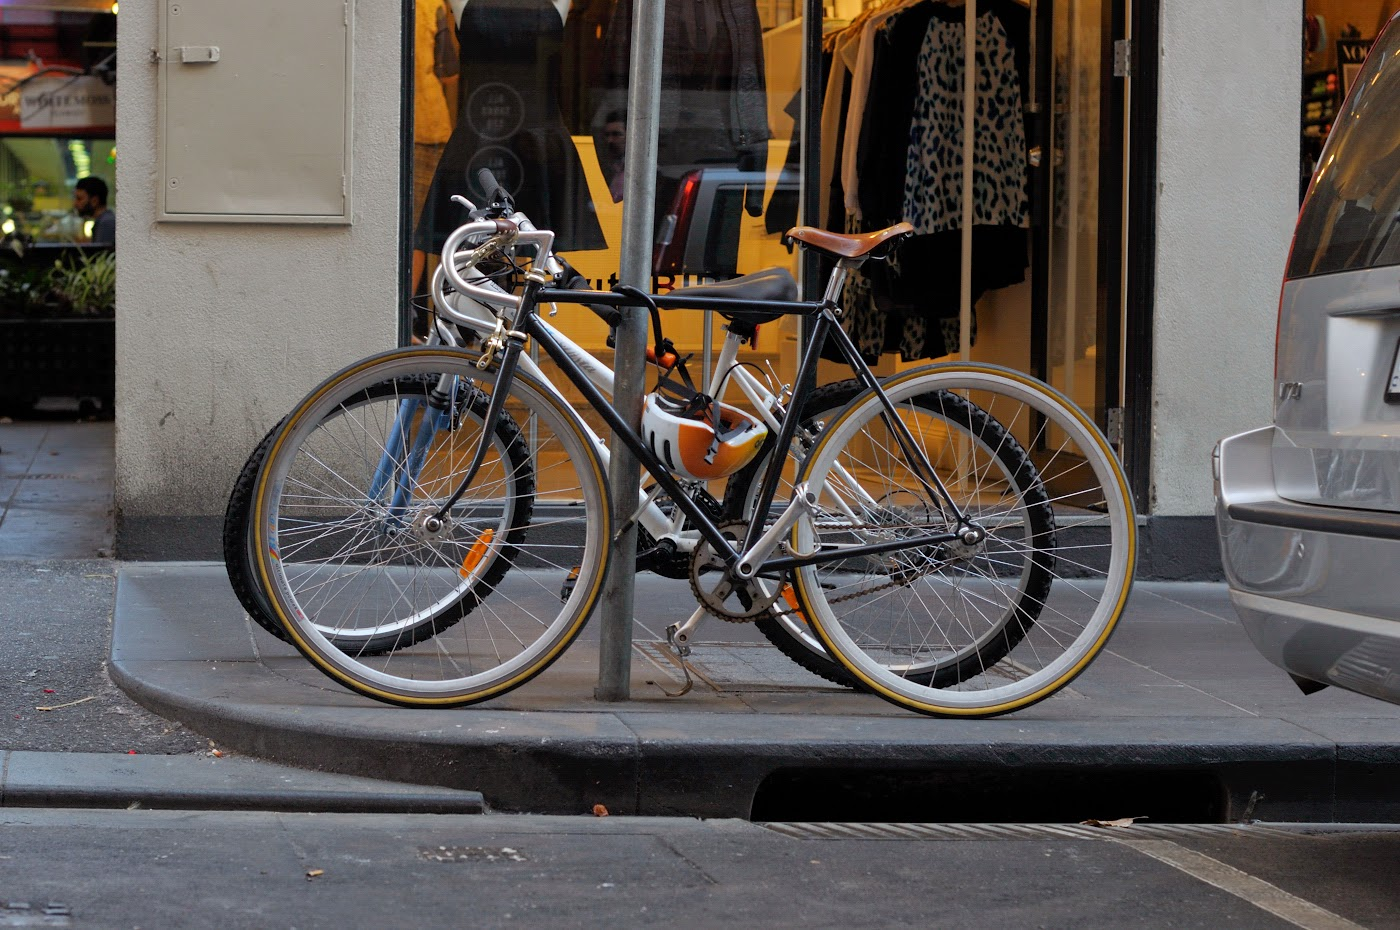 Bespoke, customisation, conversion, frame, Melbourne, Australia, tim macauley, the biketorialist, single speed, custom, flinders lane, bike, bicycle,